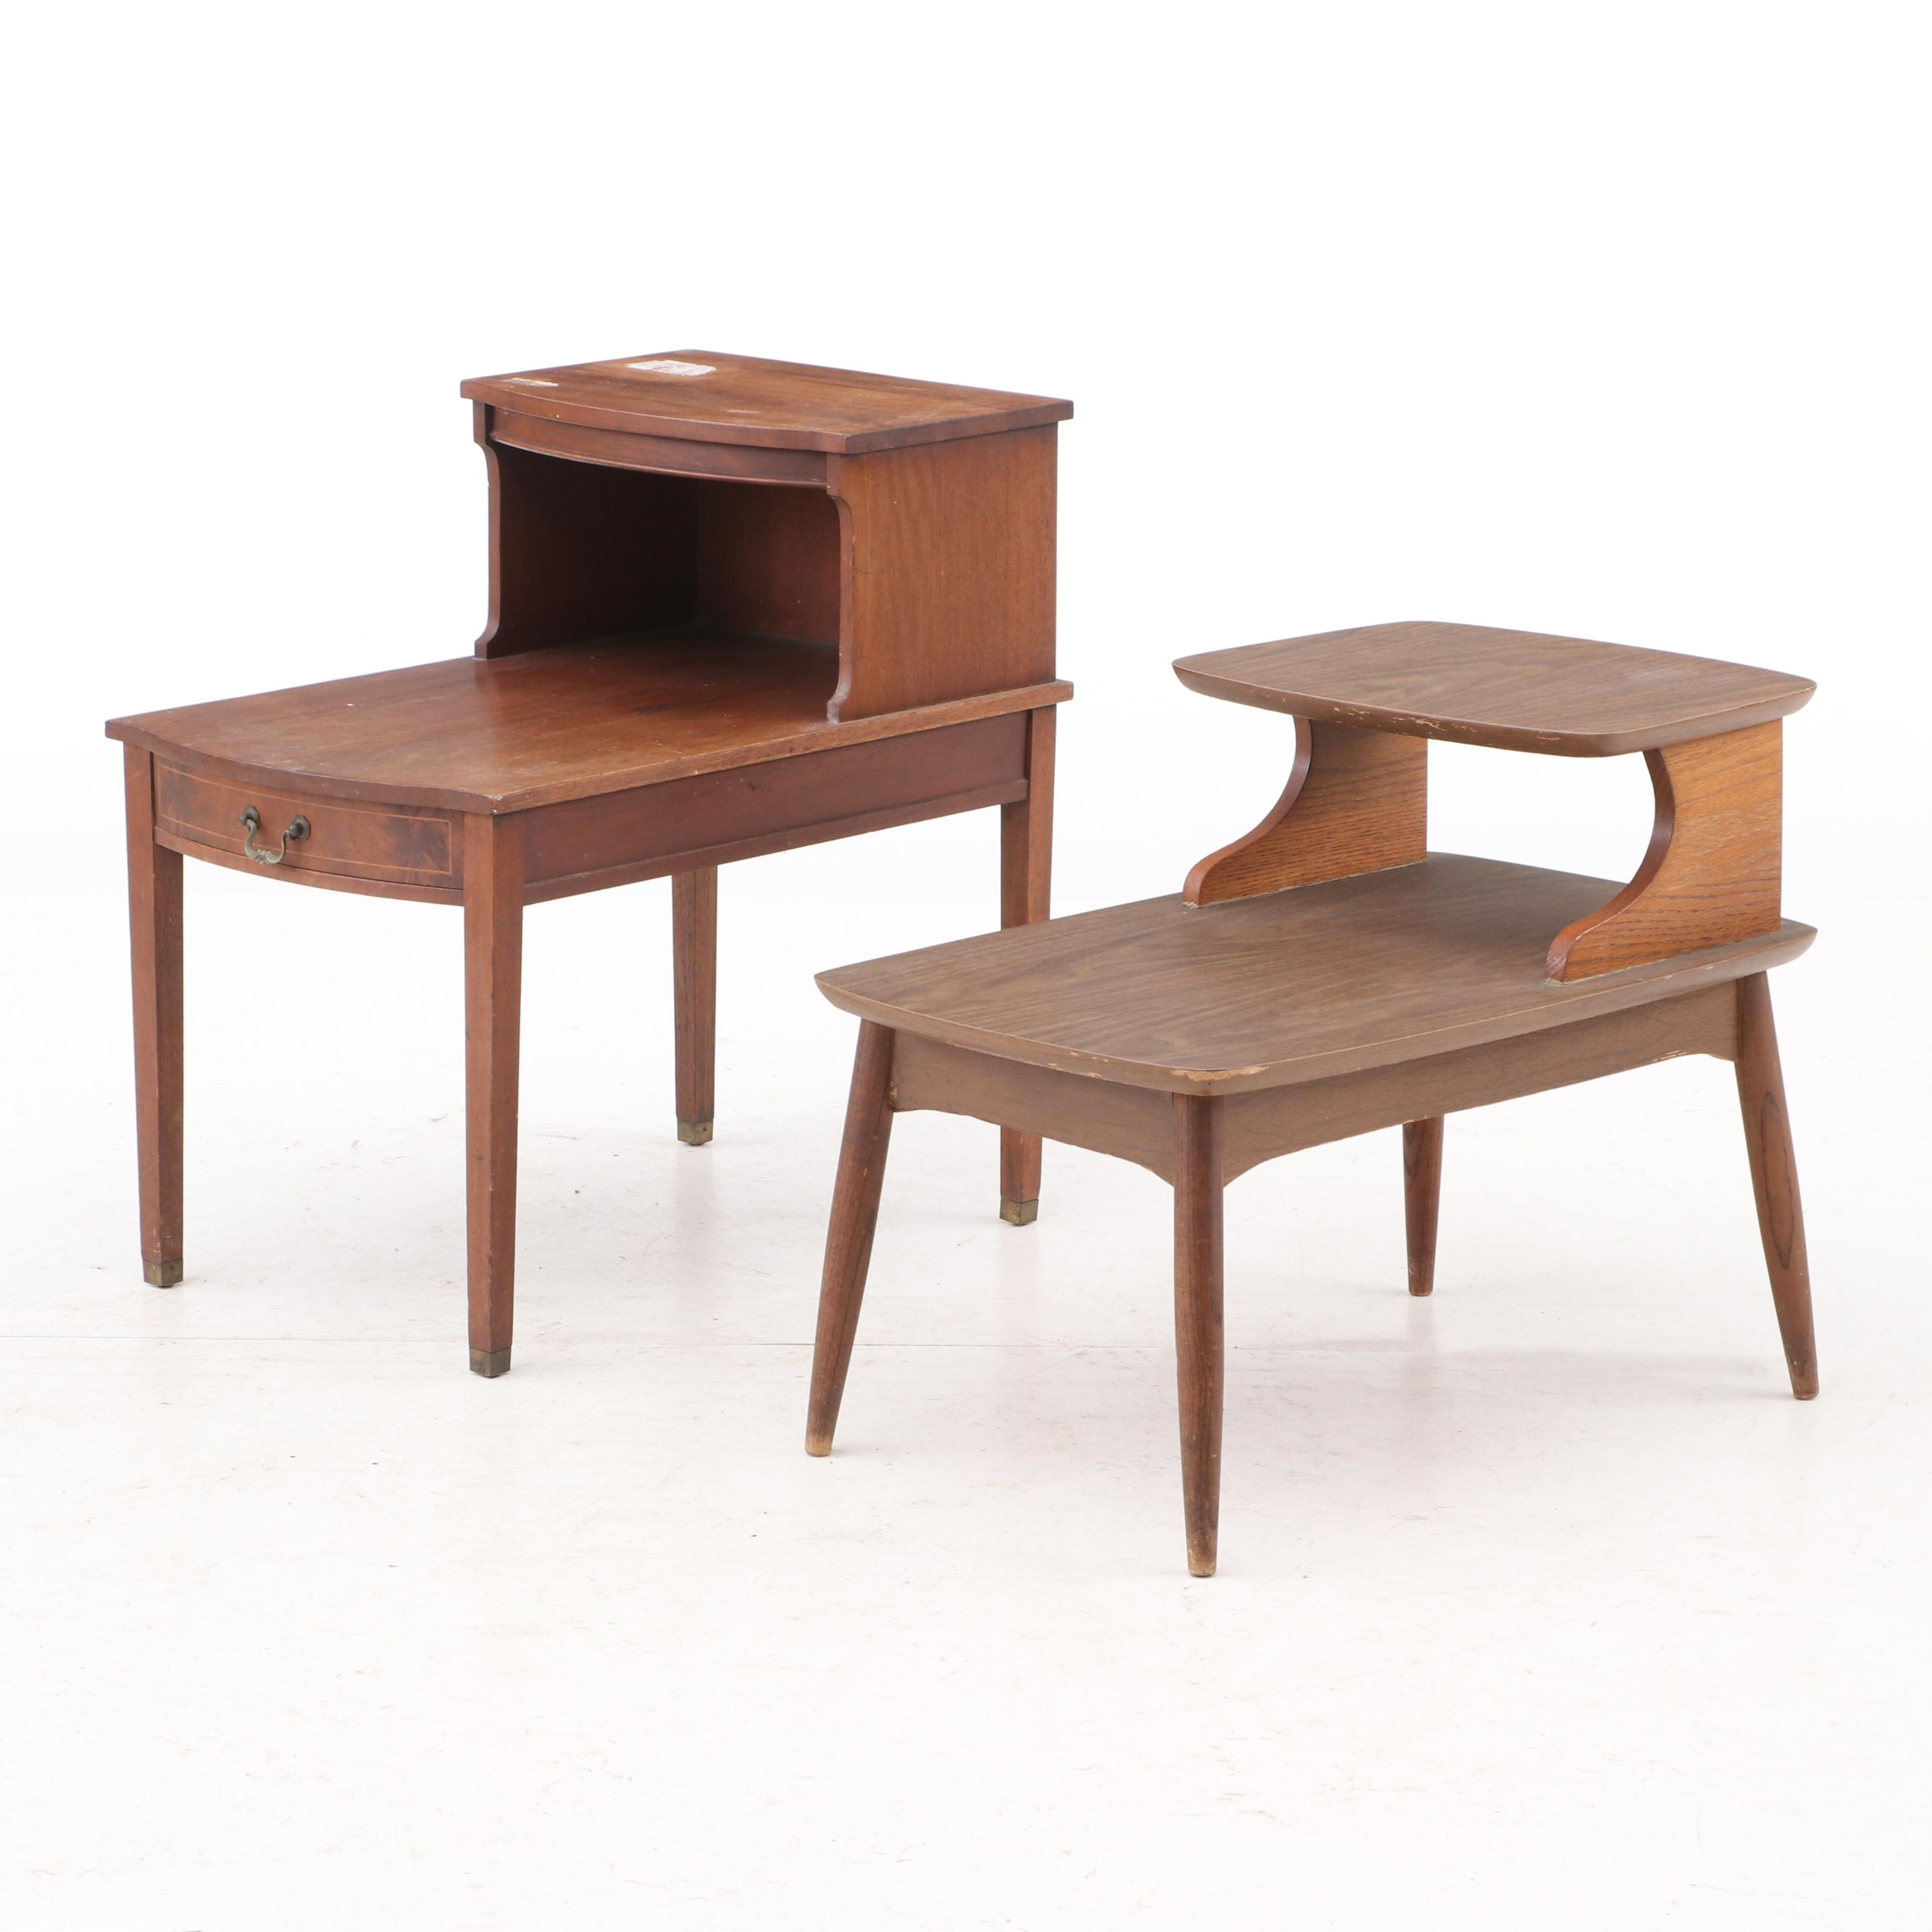 Mahogany End Table by Columbia  and Walnut Laminate Table, Mid-20th Century